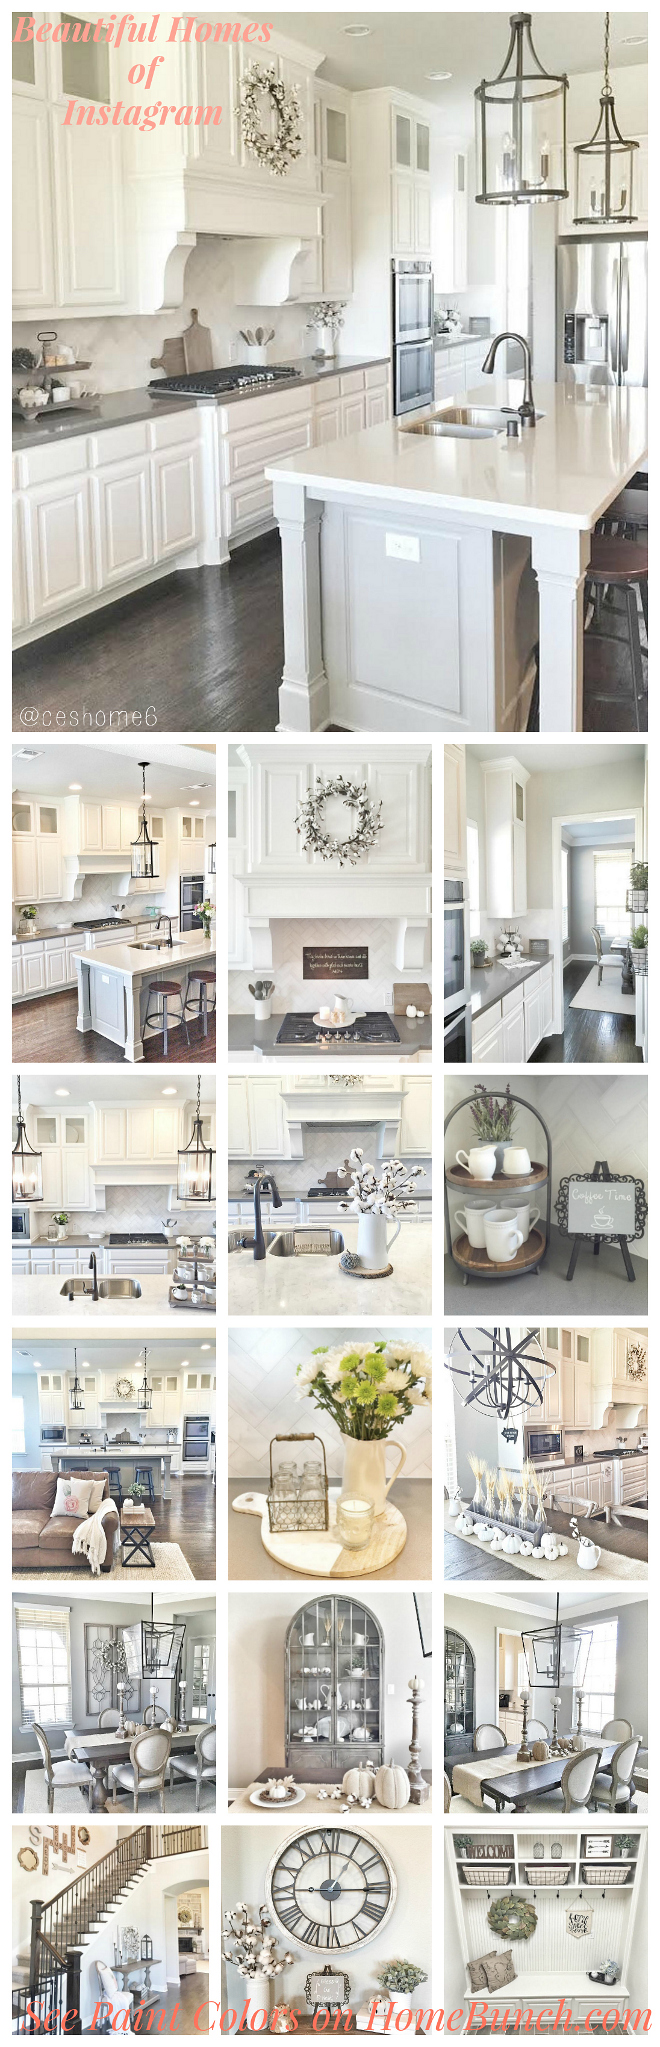 This farmhouse is being extremely popular on Pinterest. The post share all of the details such as paint colors, decor, lighting and more. Very helpful!